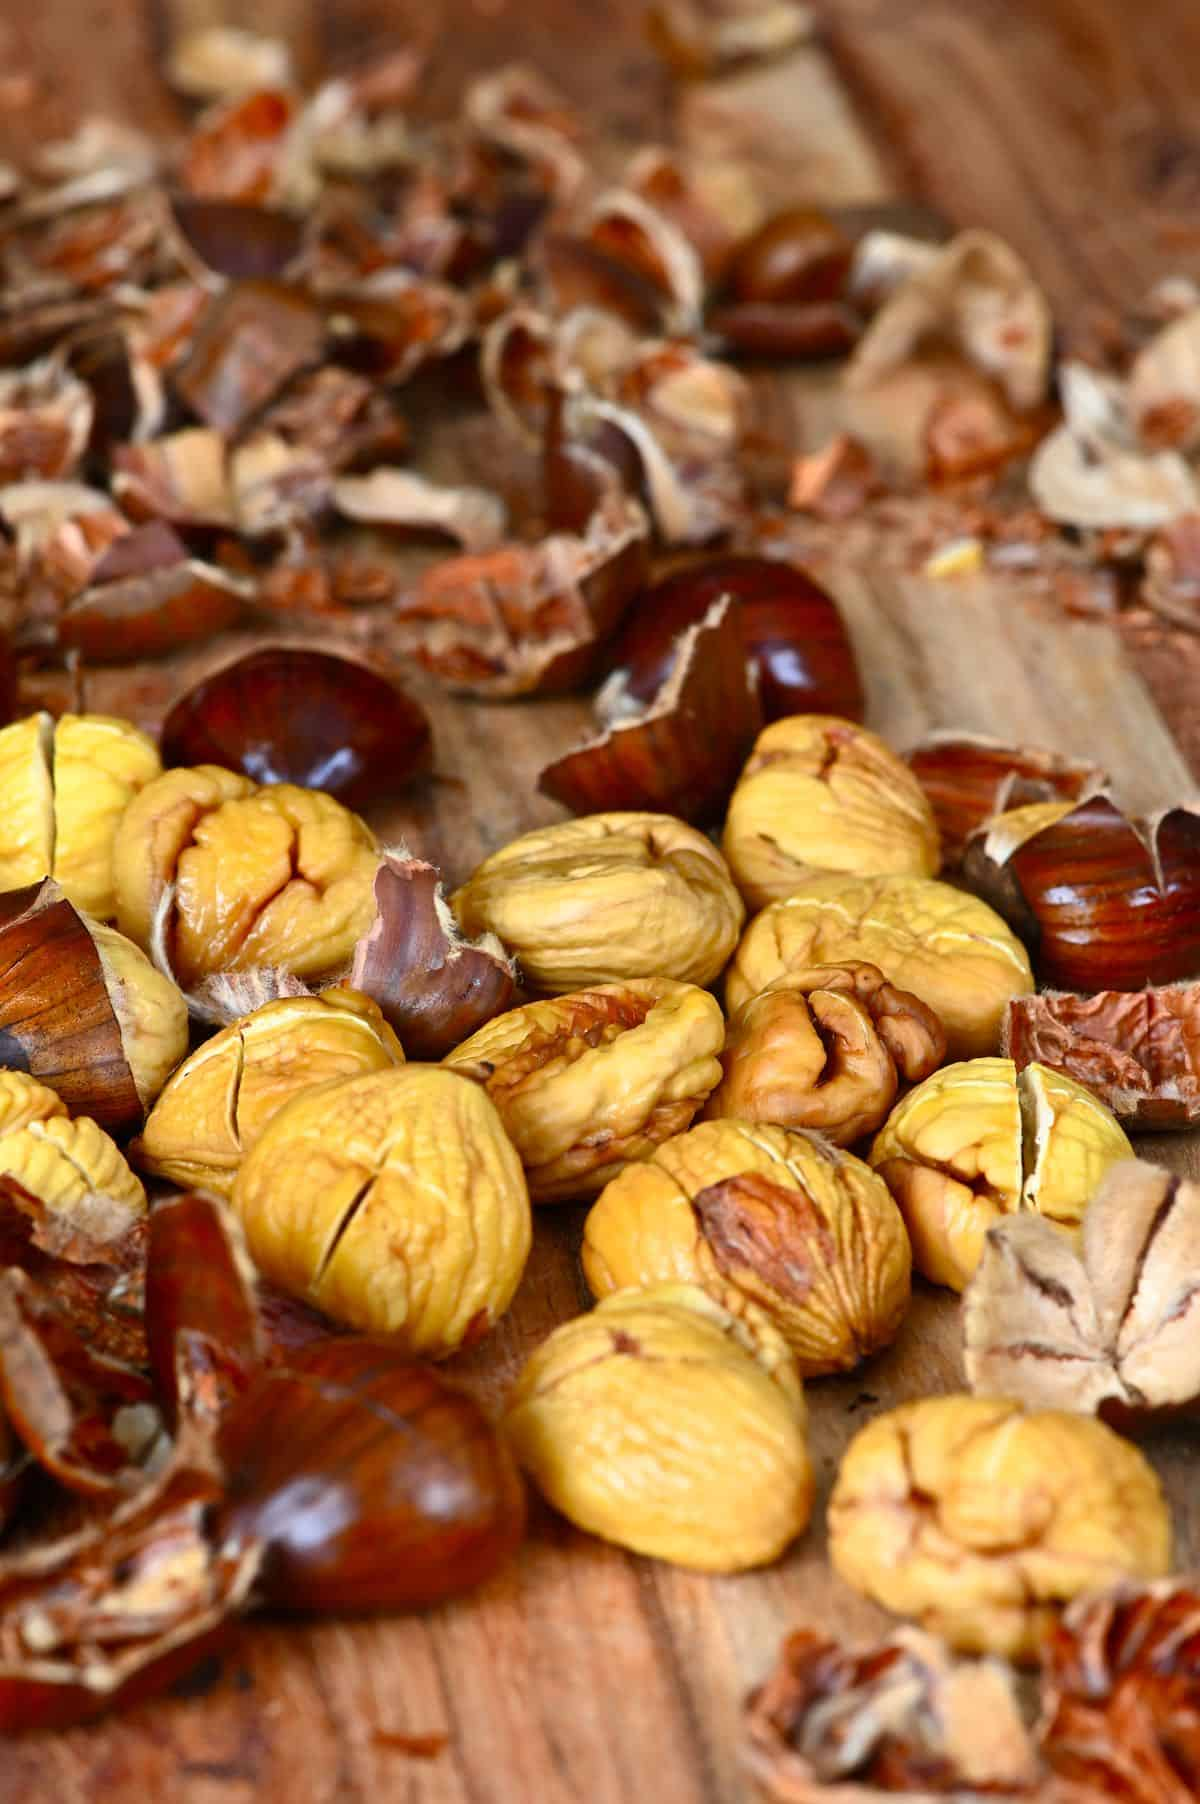 Peeled roasted chestnuts on a wooden board